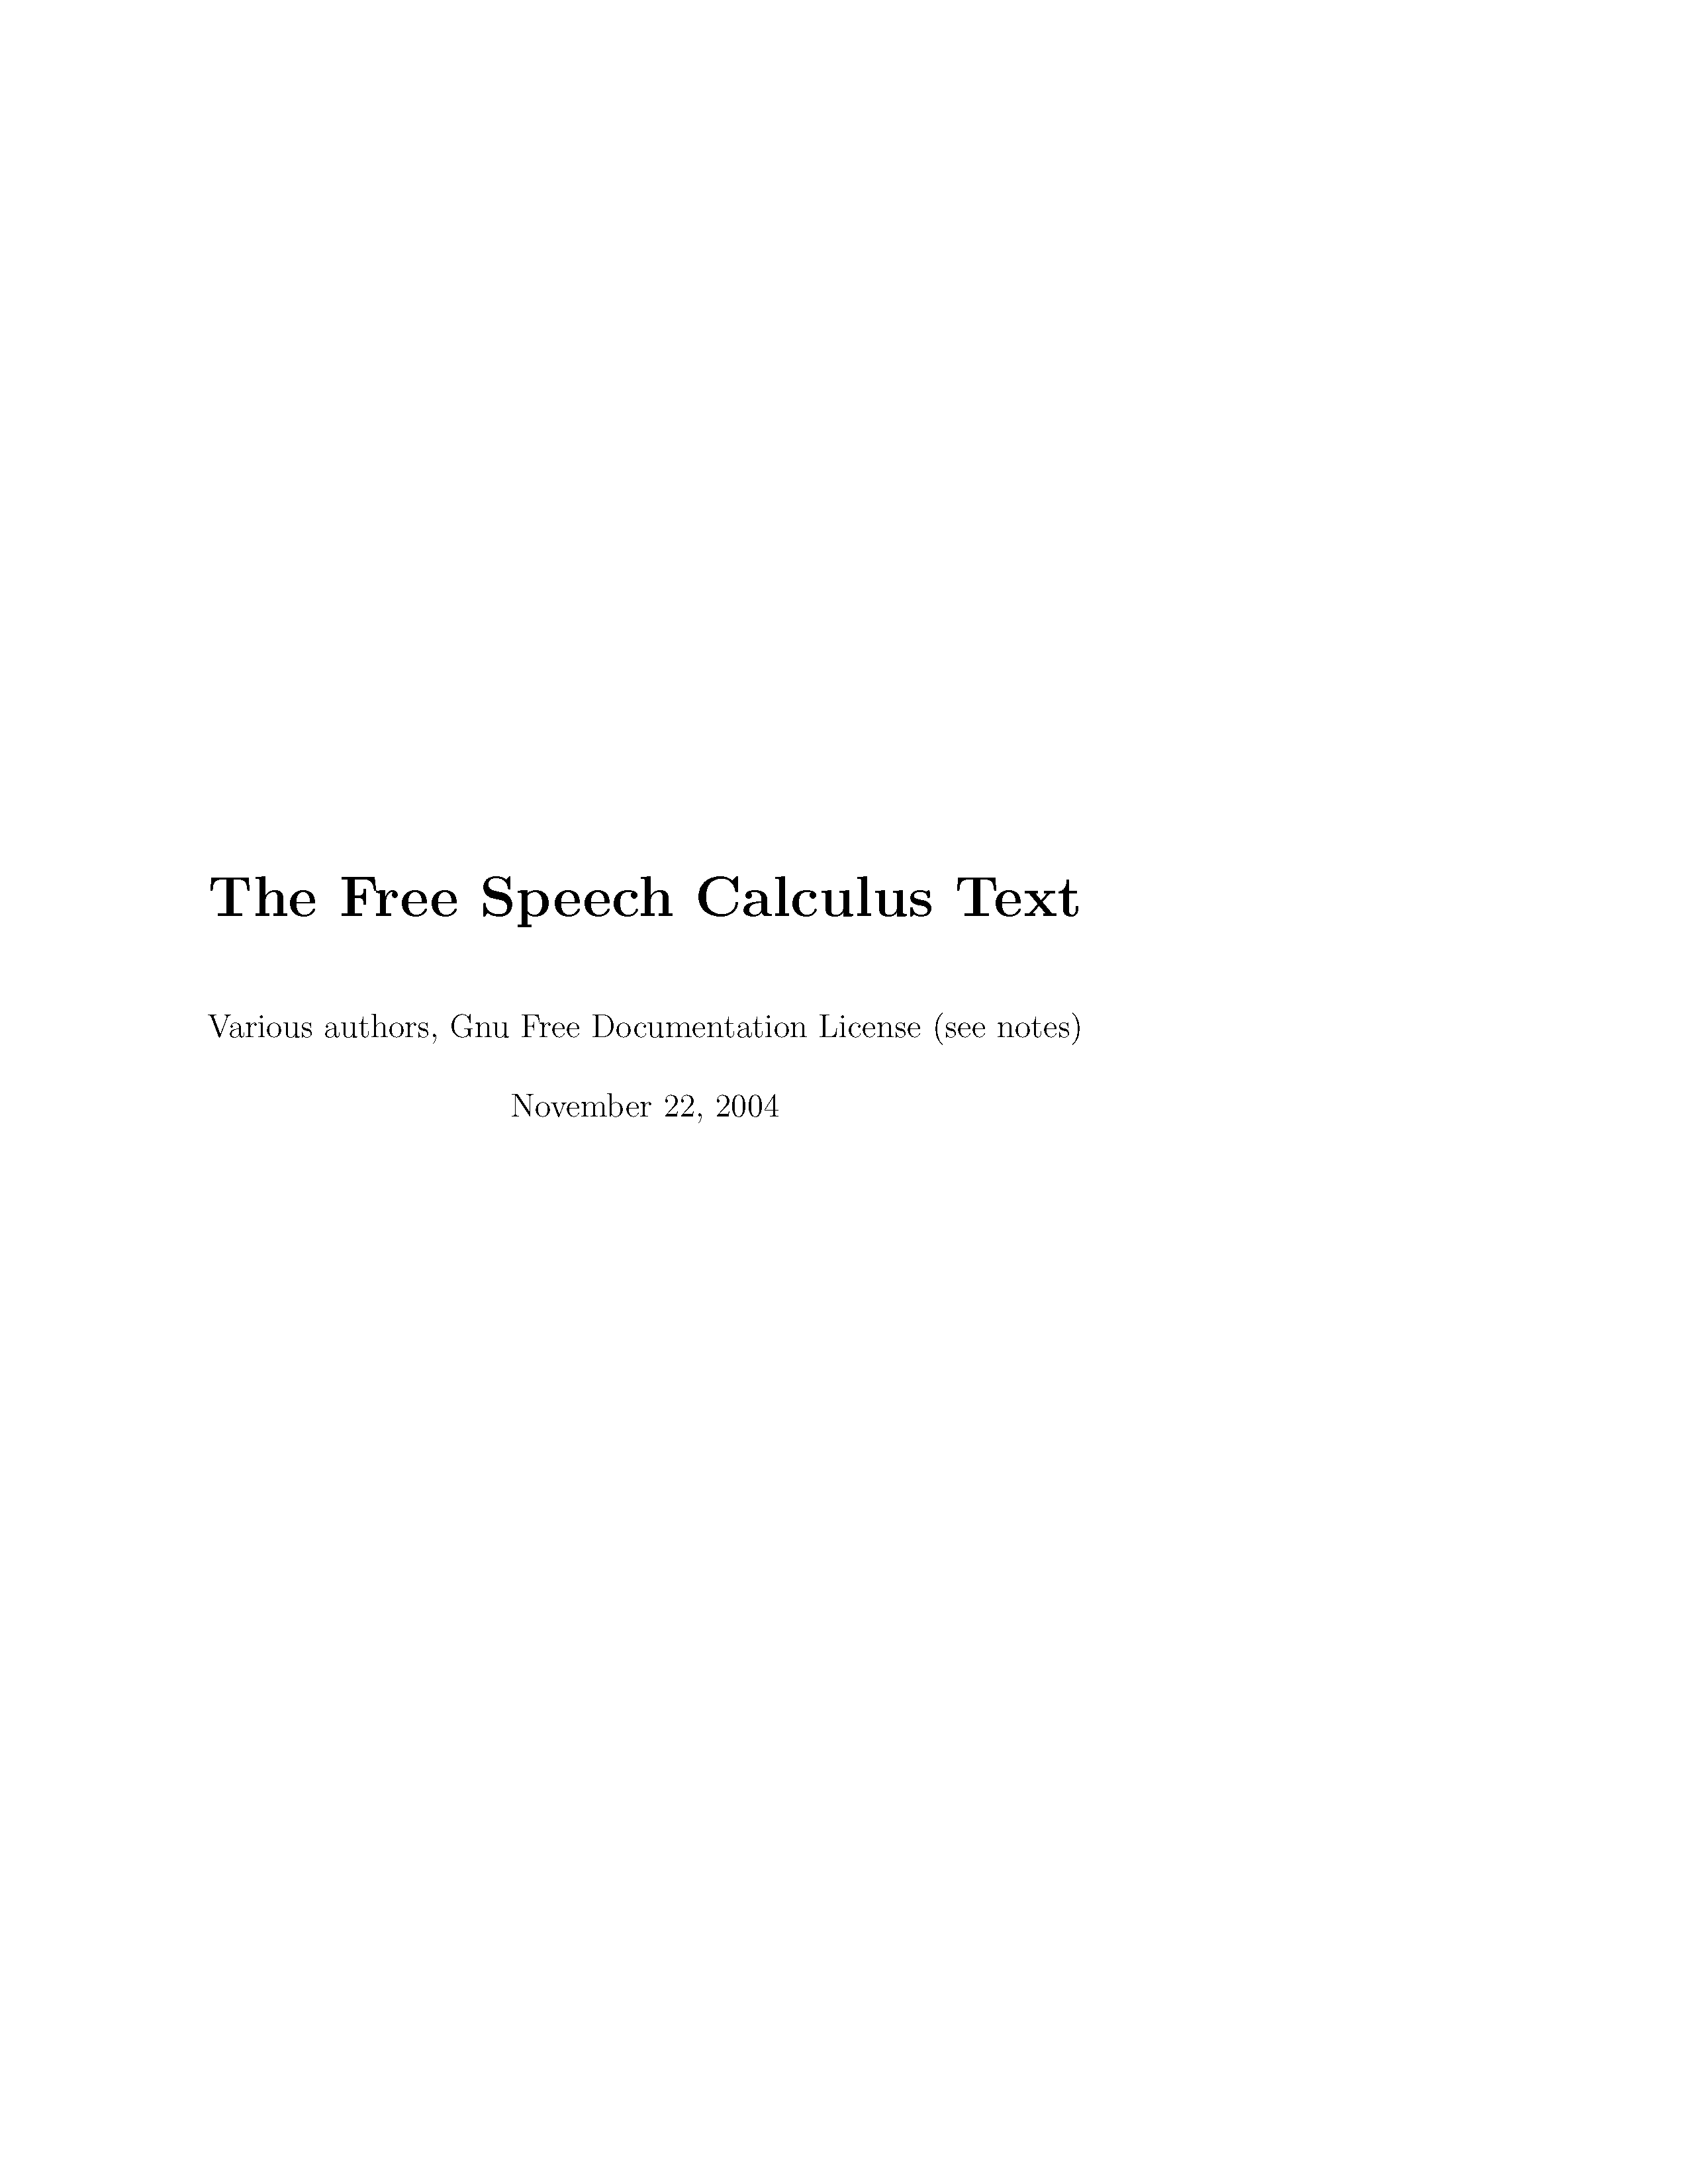 The Free Speech Calculus Text